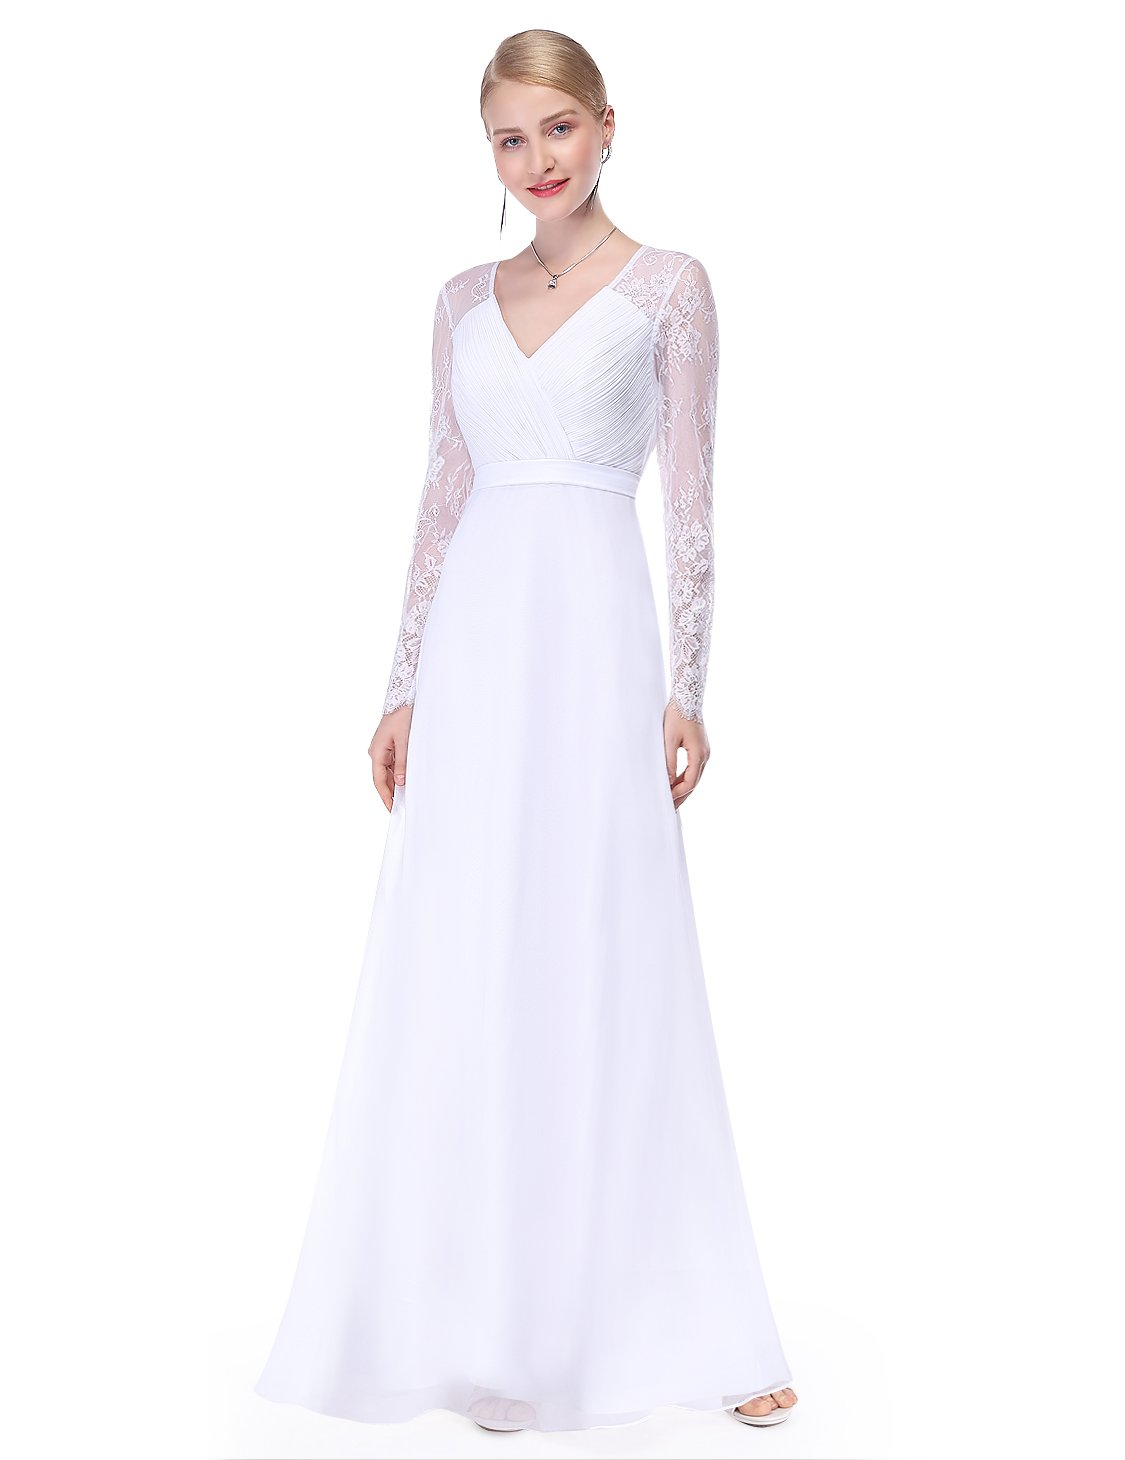 Romantic White Lace Wedding Dress: Amazon.com